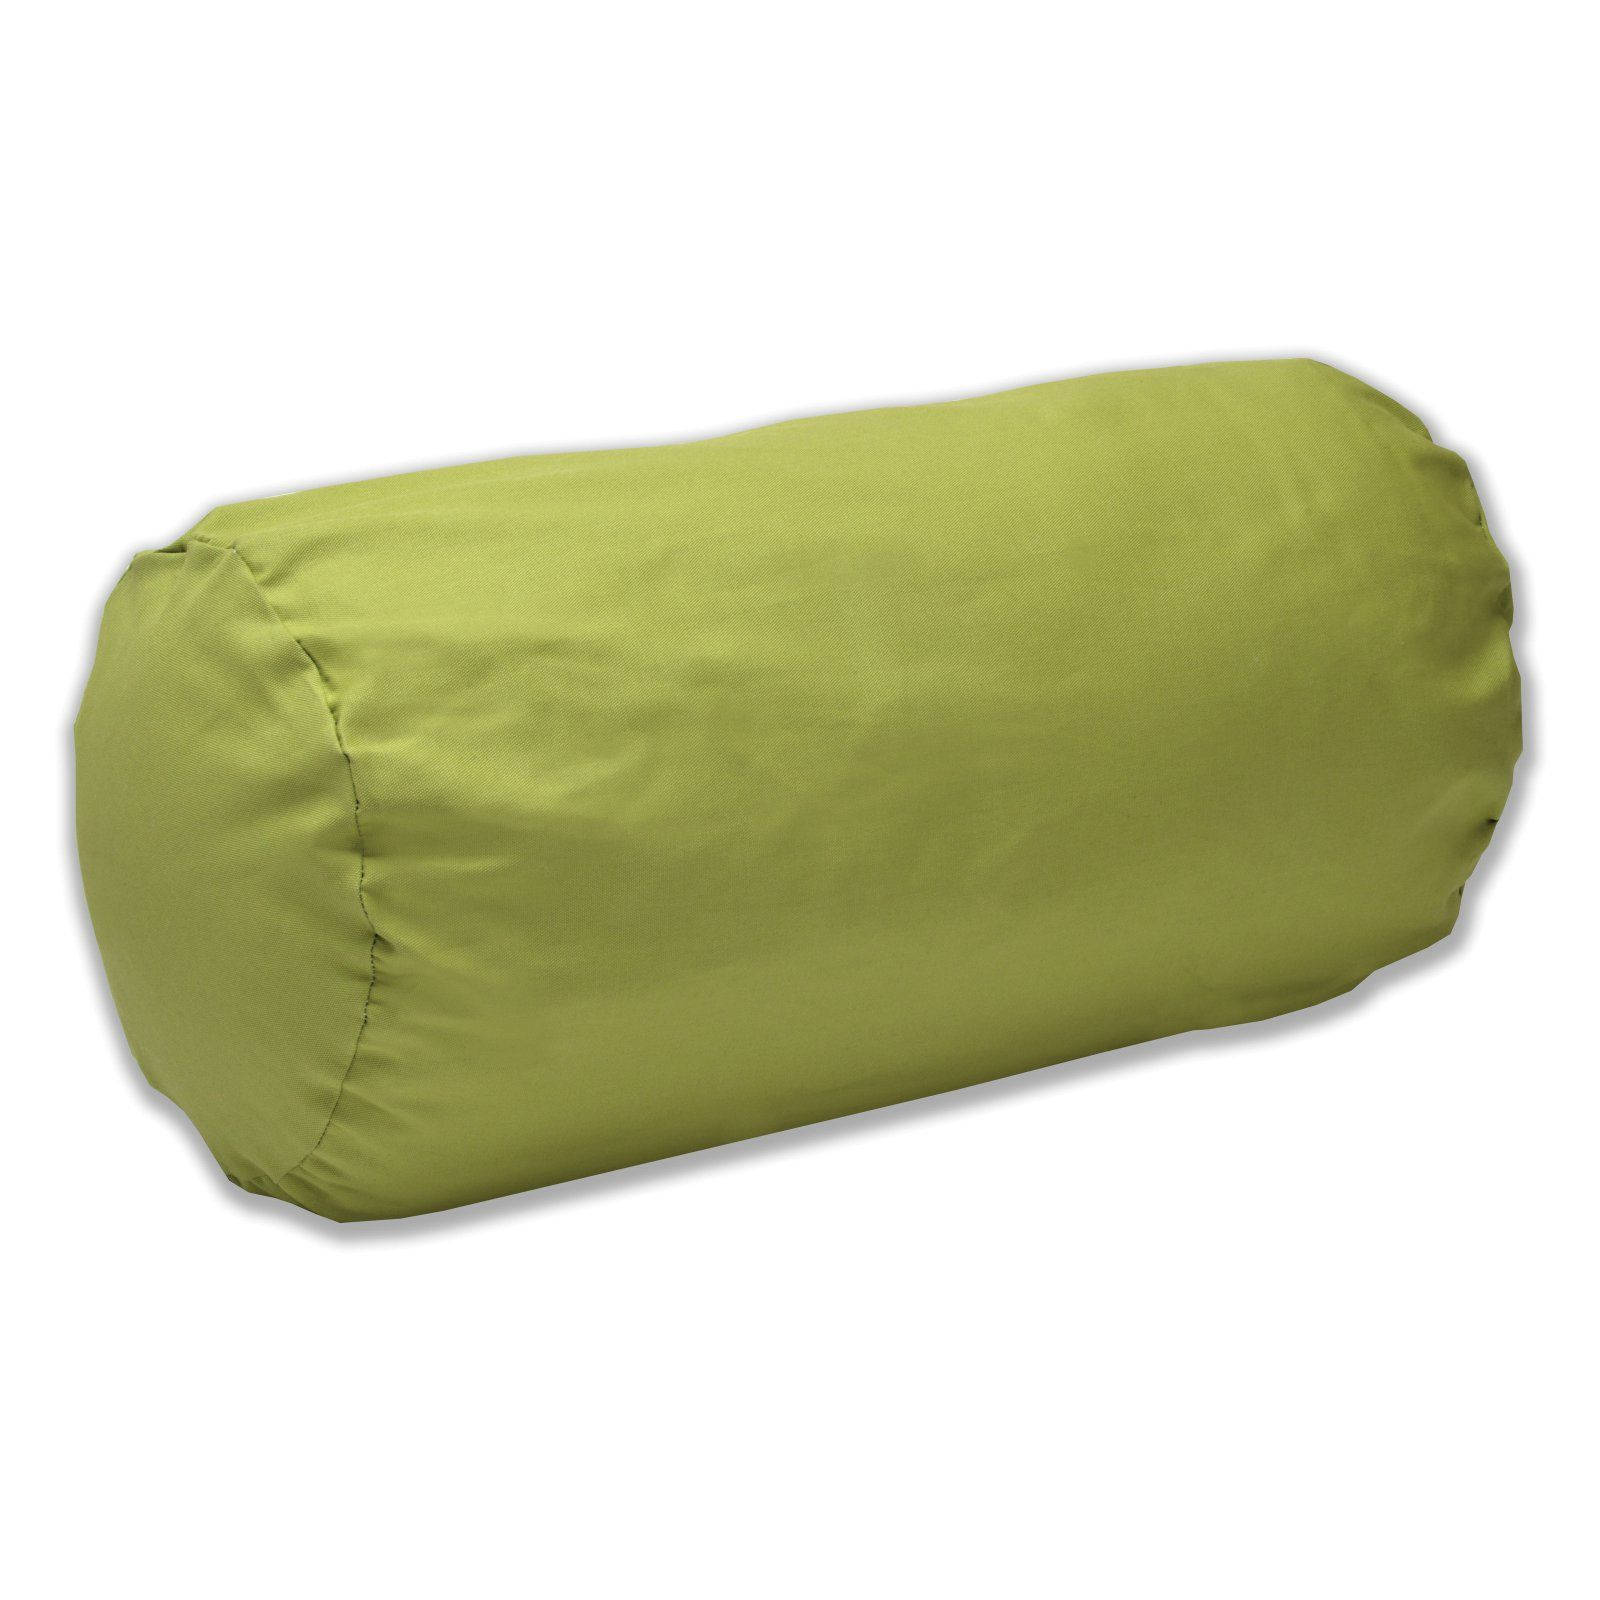 Stupendous Hermell Oversize Bolster Pillow Leaf Green Products In Creativecarmelina Interior Chair Design Creativecarmelinacom